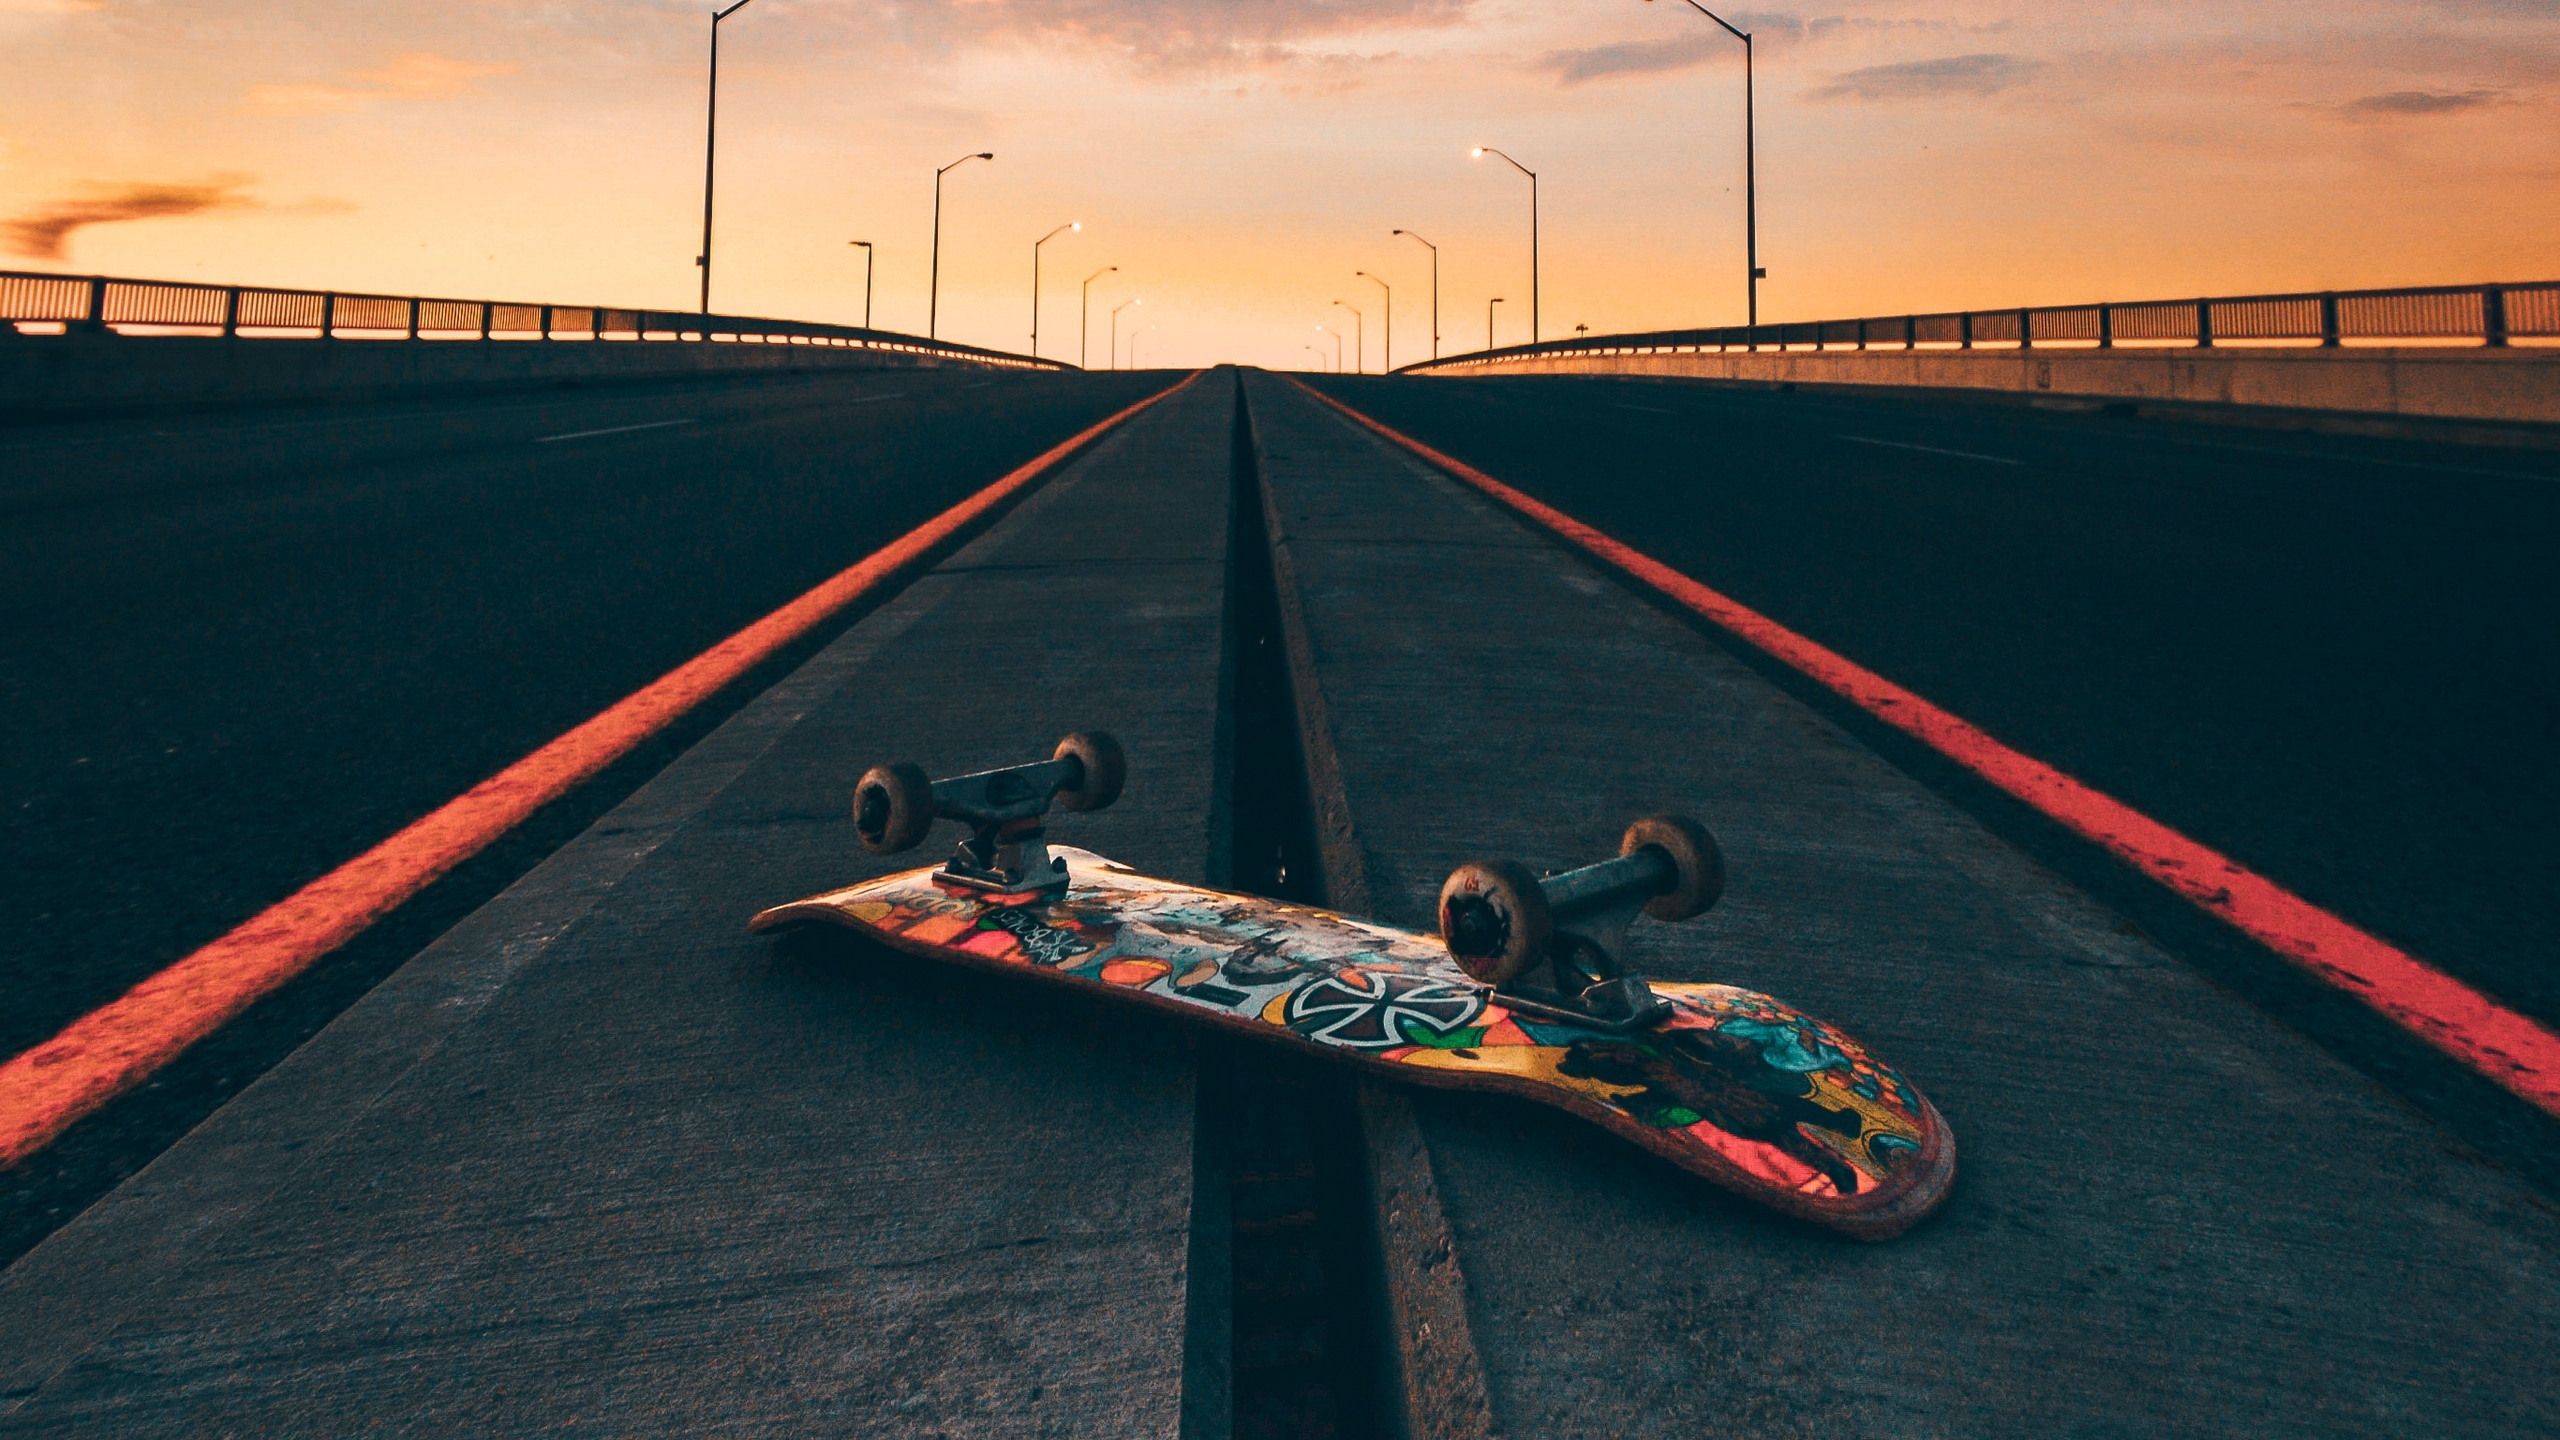 Skateboard Background Images HD HD Wallpapers 2560x1440